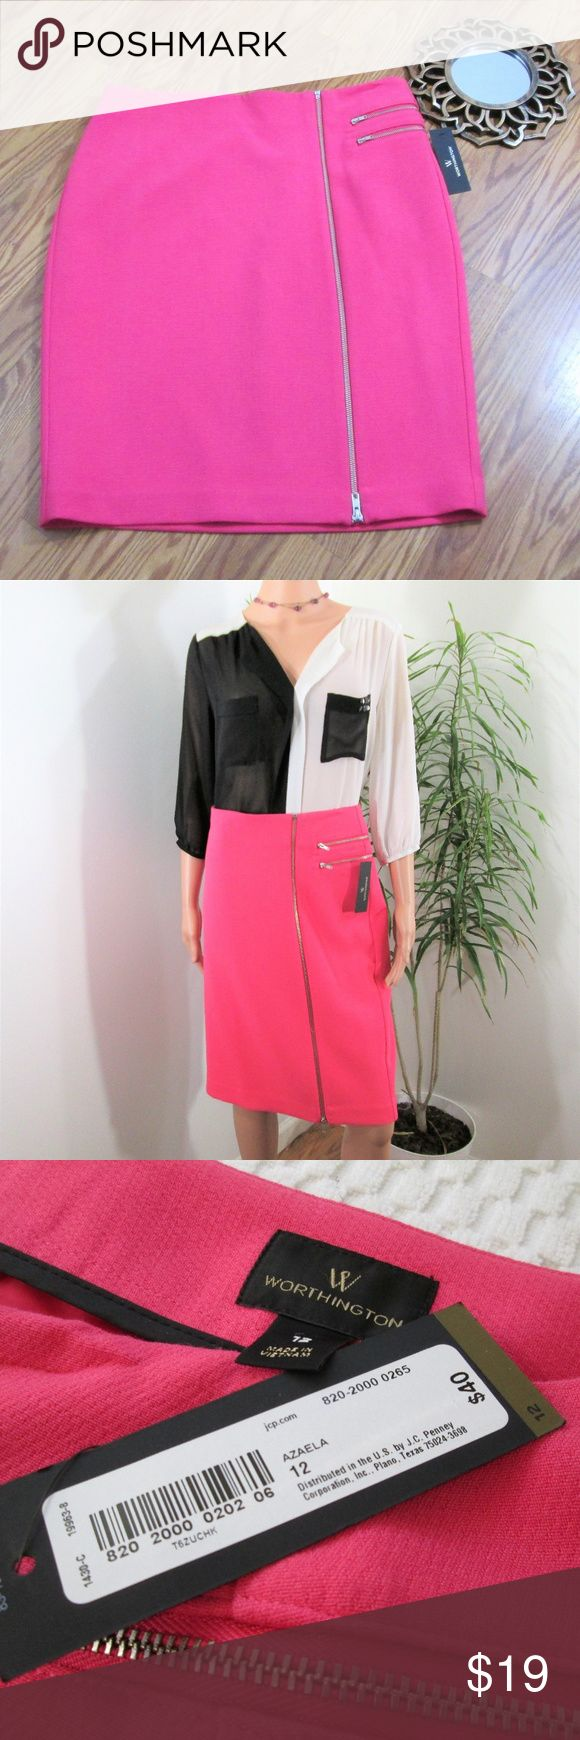 """New! Worthington Pink Pencil Skirt Winter weight fully lined skirt. Exposed front zip,  2 side/front faux zip pockets. Slightly textured.  Measured flat. 17"""" across waist. 21"""" across hips. 24"""" long. Knee length on 5' 9"""". poly/rayon/spandex. Worthington Skirts Pencil"""